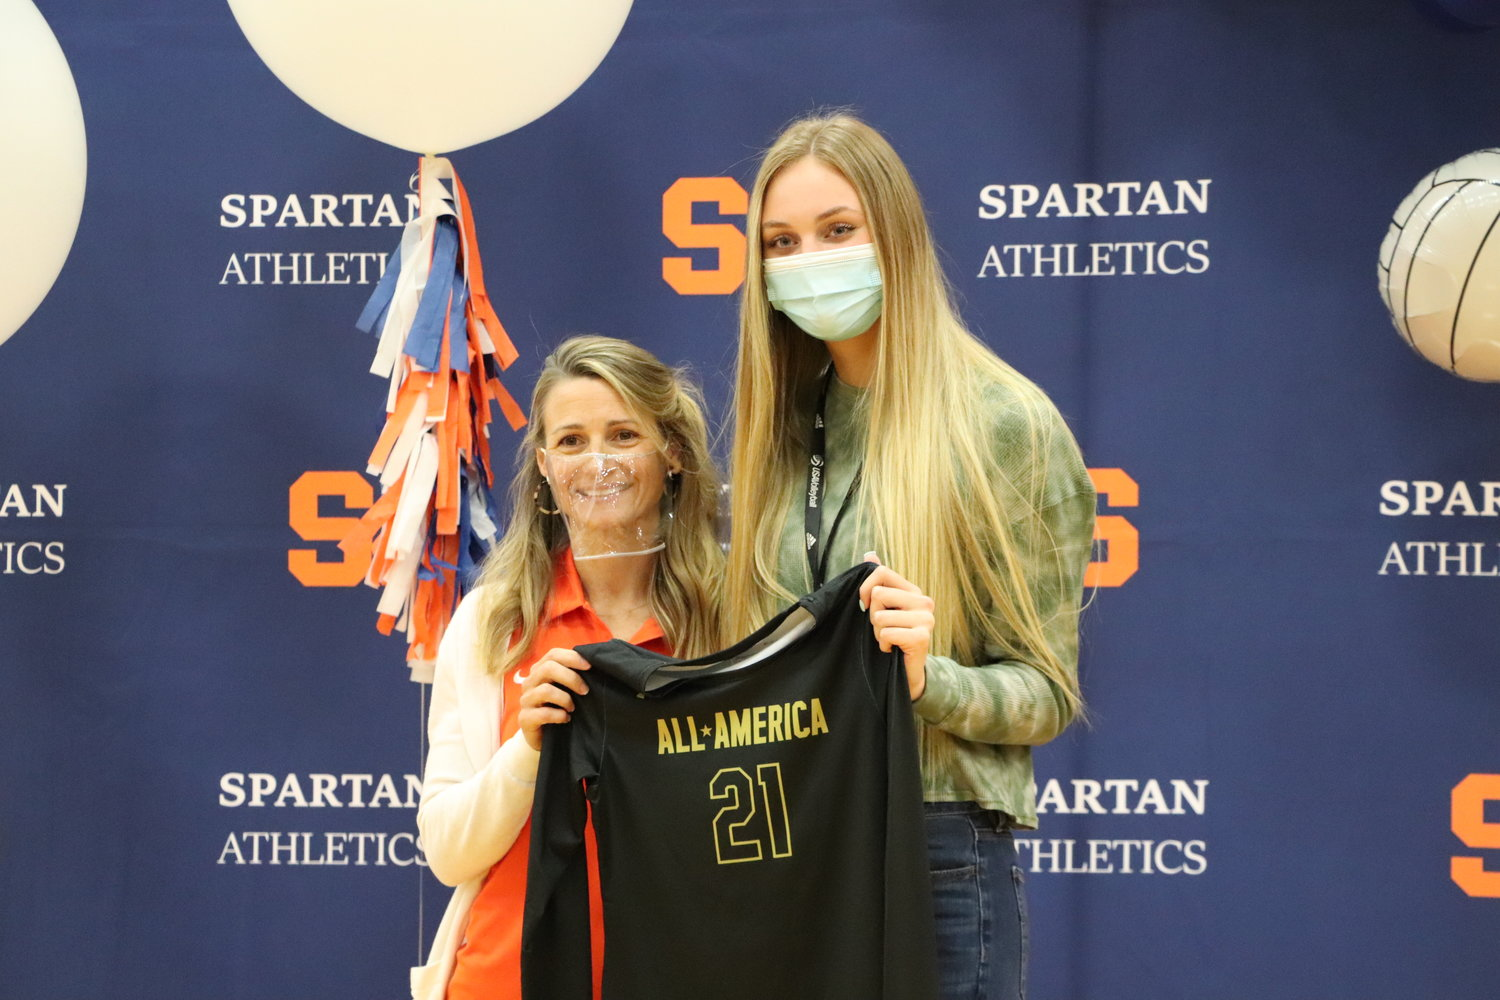 Seven Lakes senior outside hitter Ally Batenhorst and Spartans coach Amy Cataline pose for a photo after Batenhorst was awarded her Under Armour All-American jersey on Wednesday morning after being selected as one of 11 players to the first team.